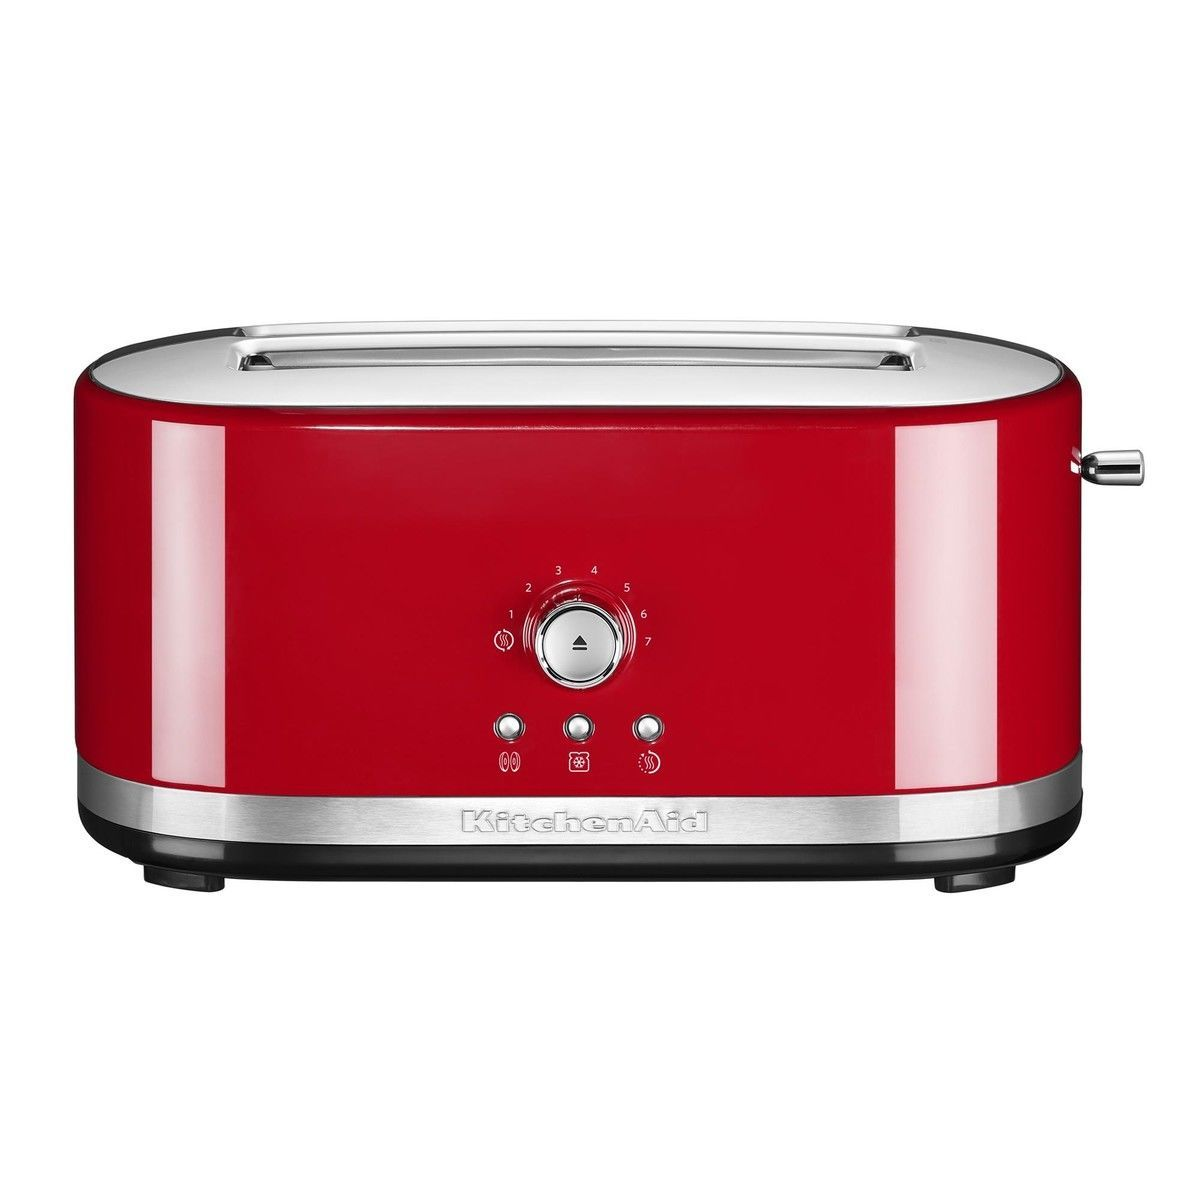 kitchenaid 5kmt4116 manual control toaster kitchenaid. Black Bedroom Furniture Sets. Home Design Ideas